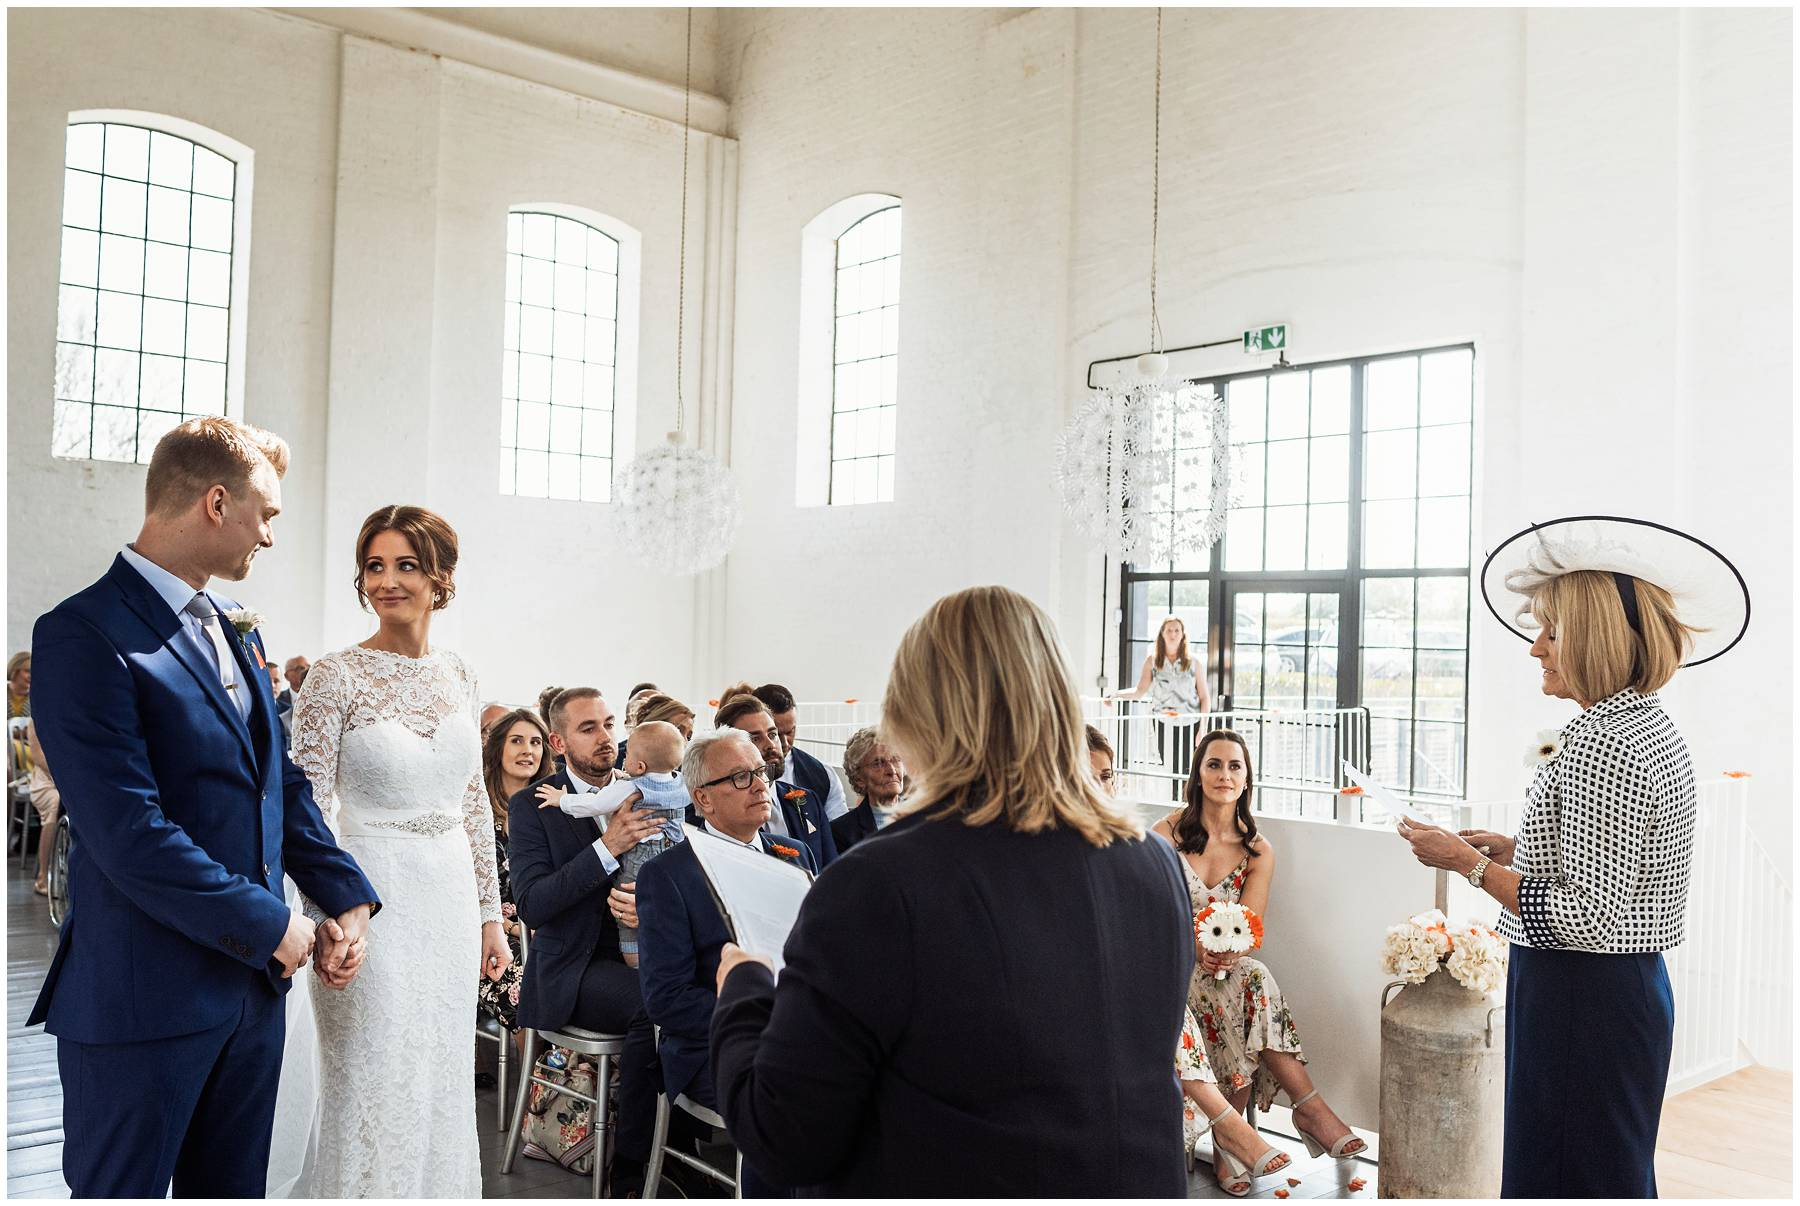 Wedding at the Winding House in Kent